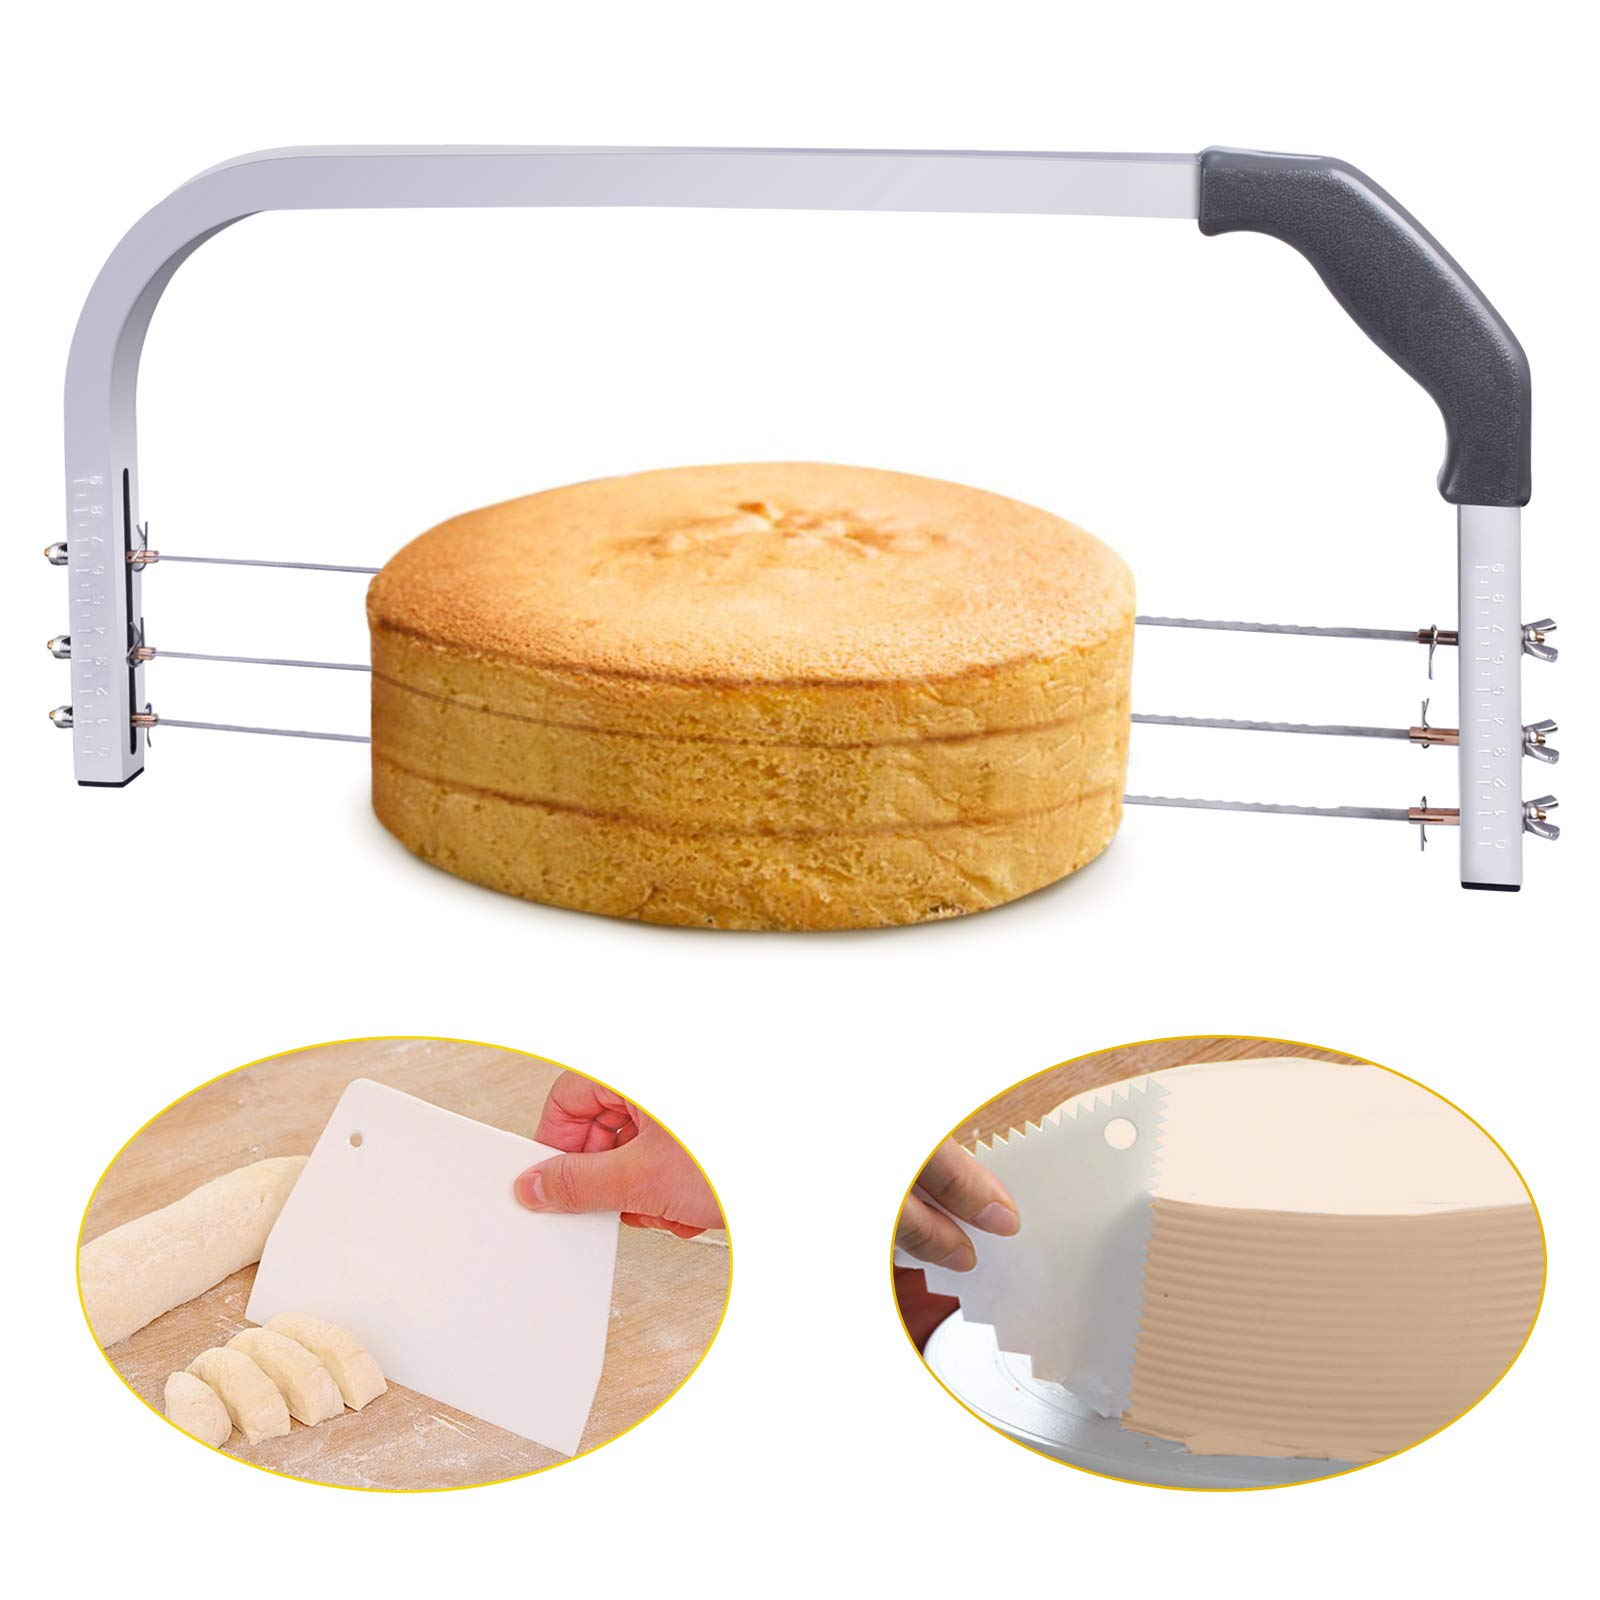 Bonviee Adjustable Cake Leveler Professional Layer Cake Slicer Cutter 3 Blades Stainless Steel Cut Saw 18'' Wide with 2pcs Plastic Scrapers for Baking Tools